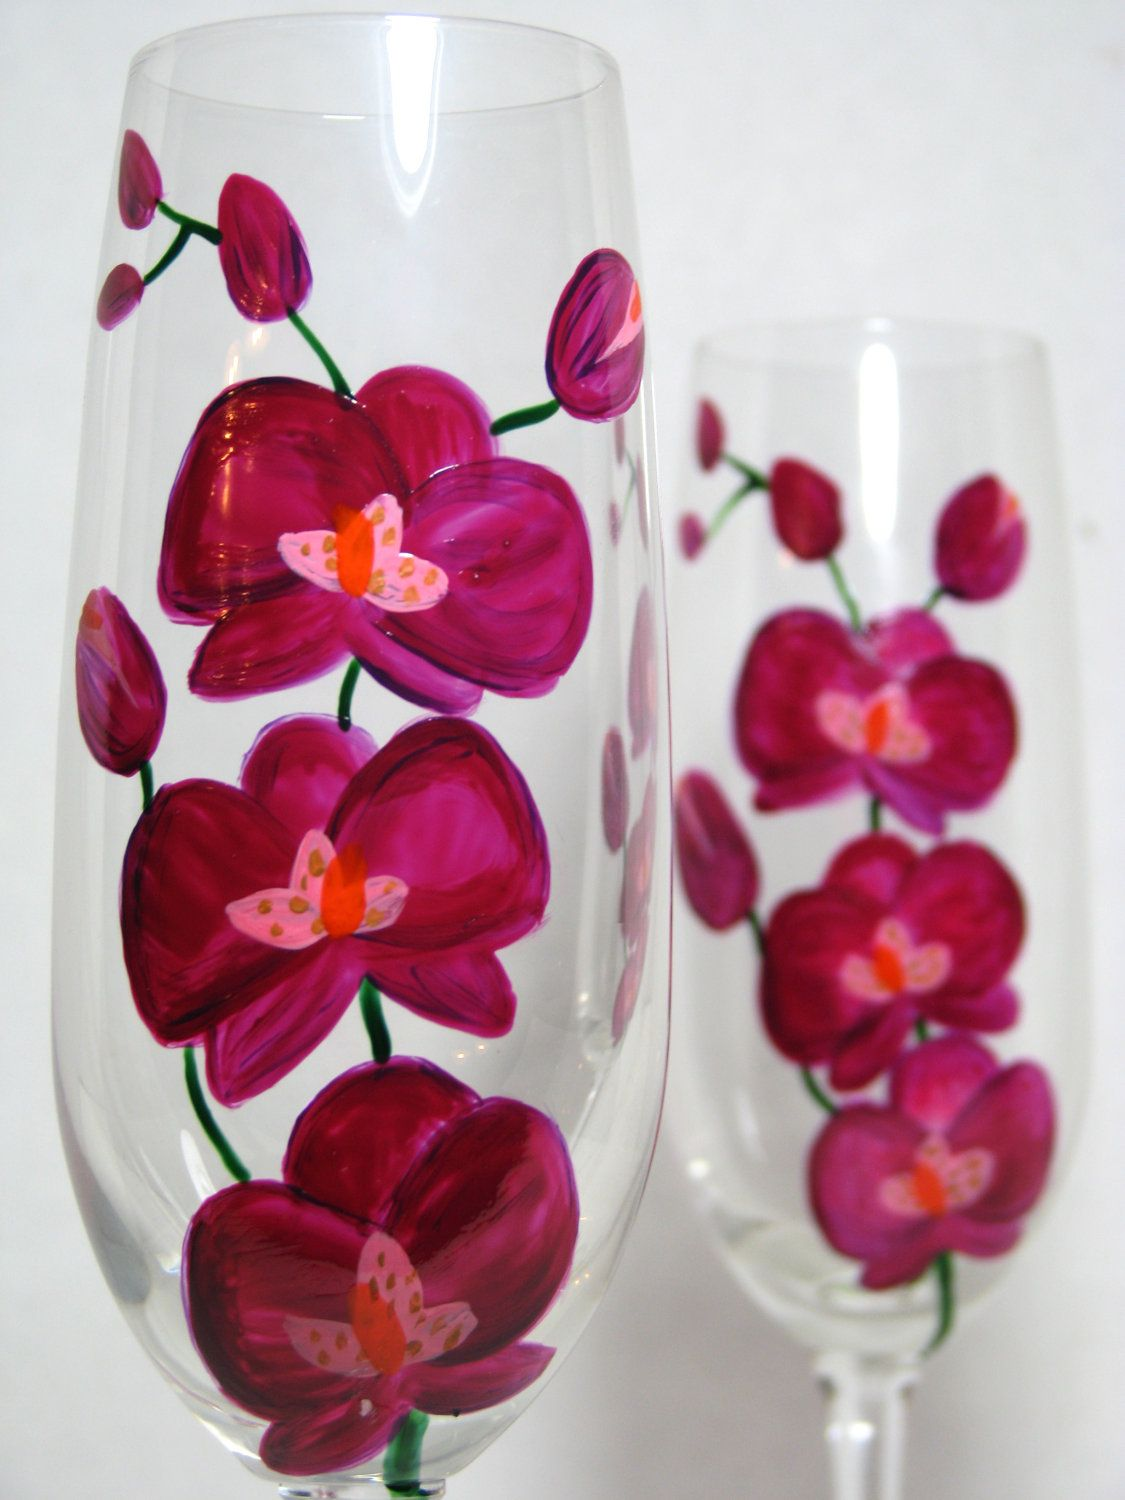 Crystal Champagne Flutes Fushia Orchids 50 00 Via Etsy Hand Painted Glassware Decorated Wine Glasses Hand Painted Wine Glasses